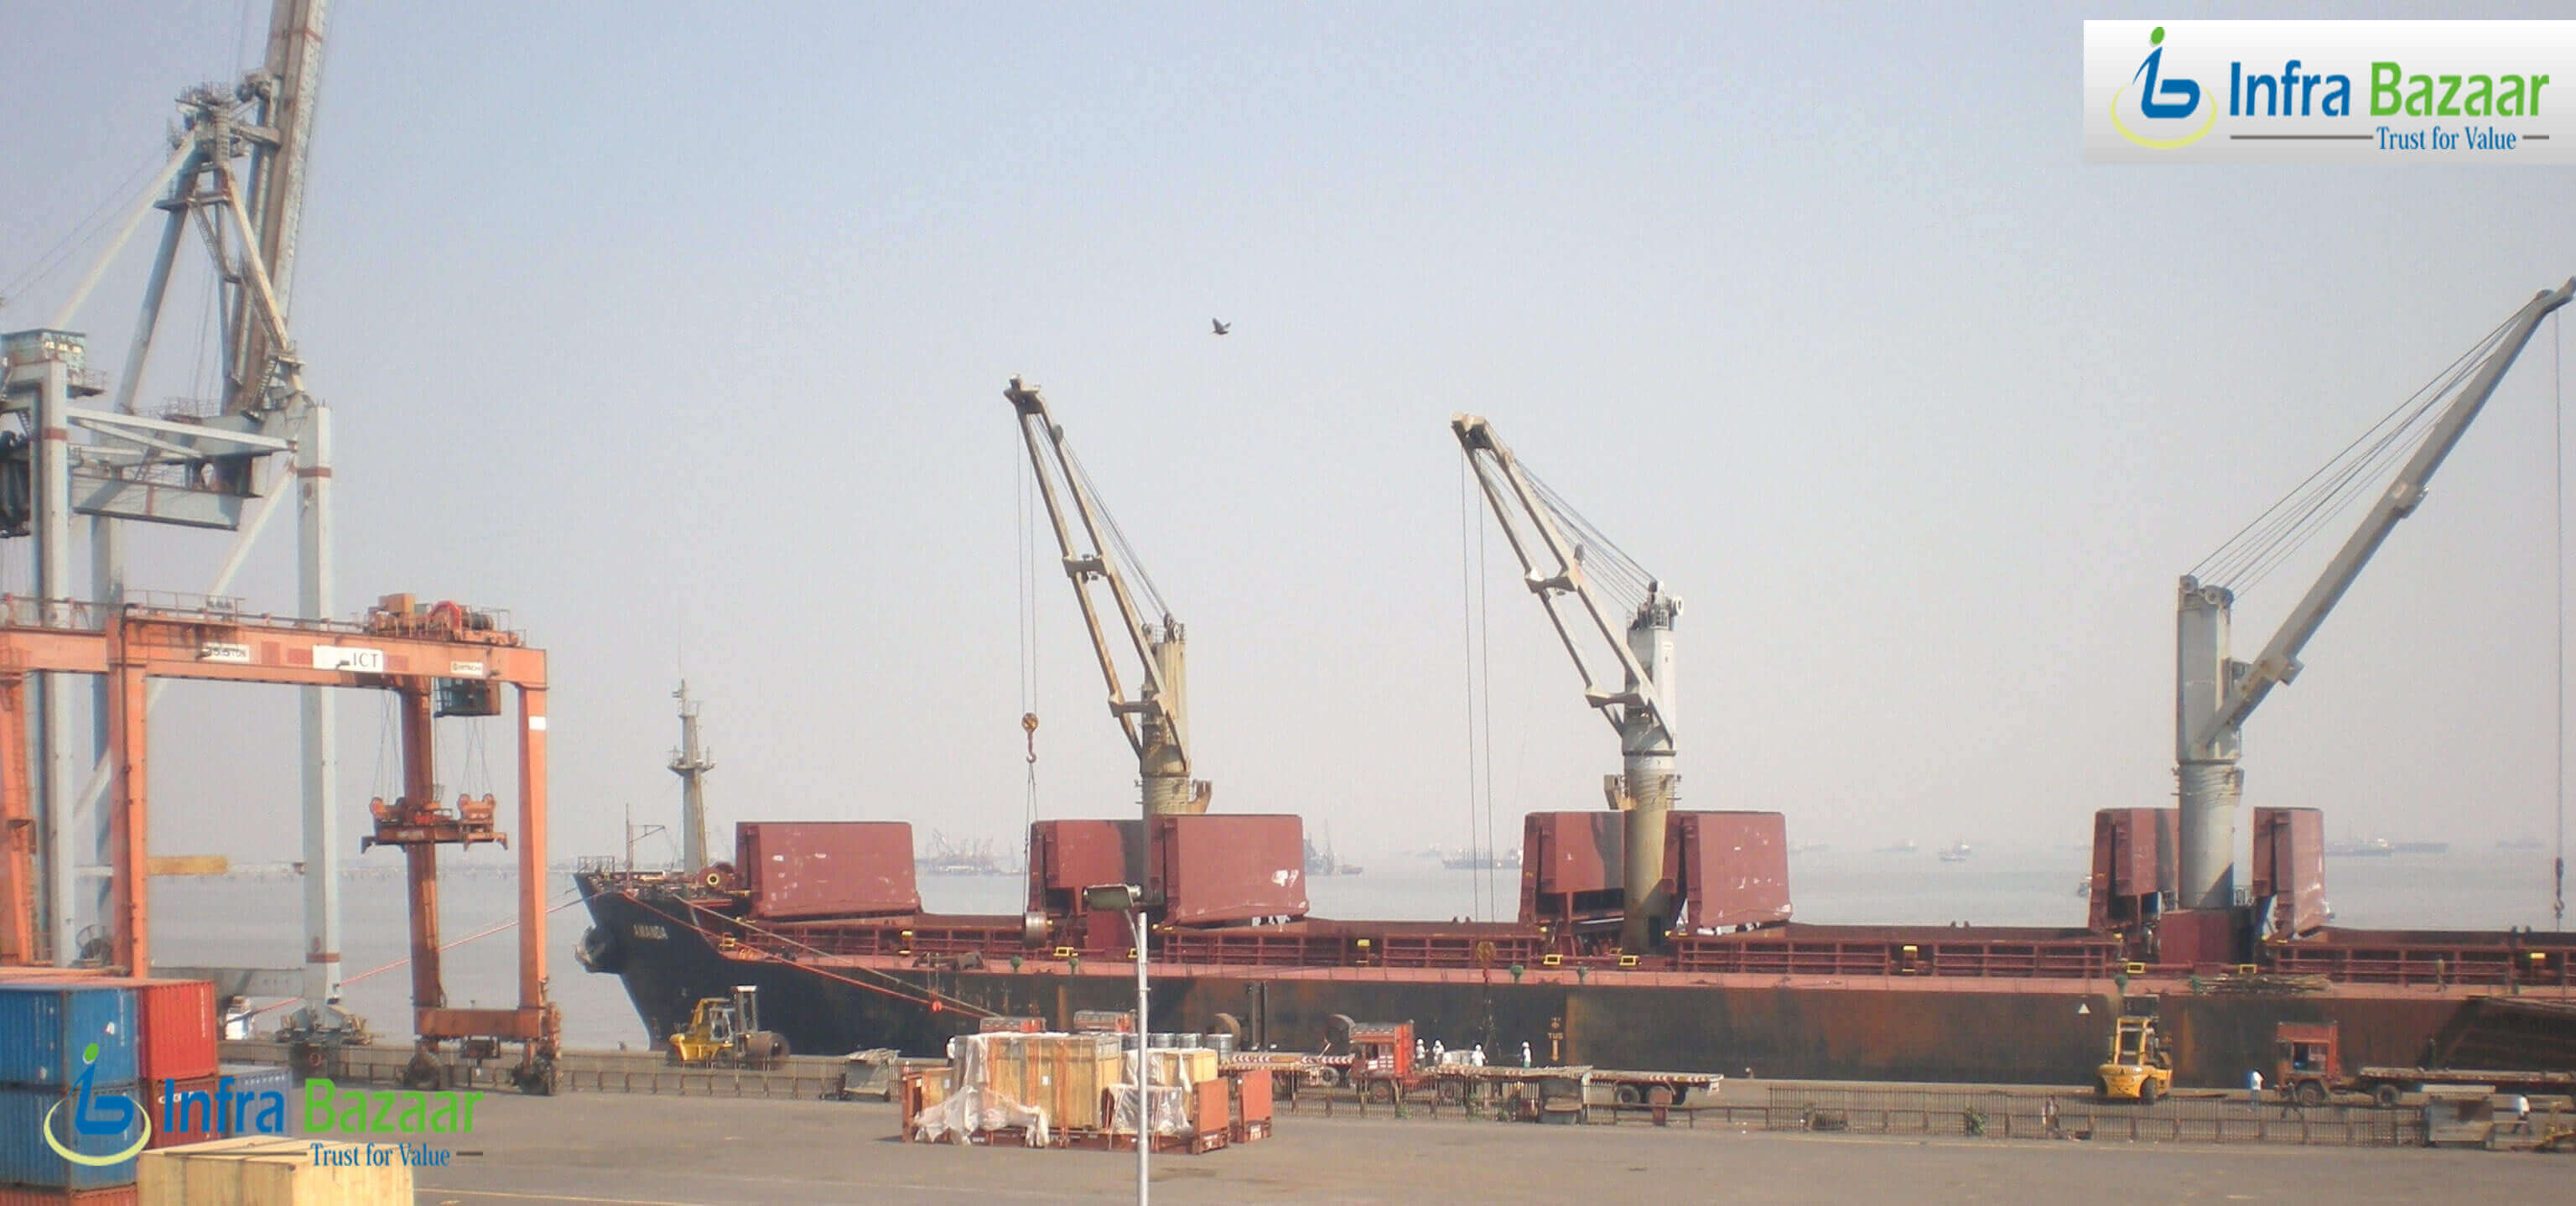 Government keen on upgrading ports, eyes at $2 Billion in foreign funding  Infra Bazaar